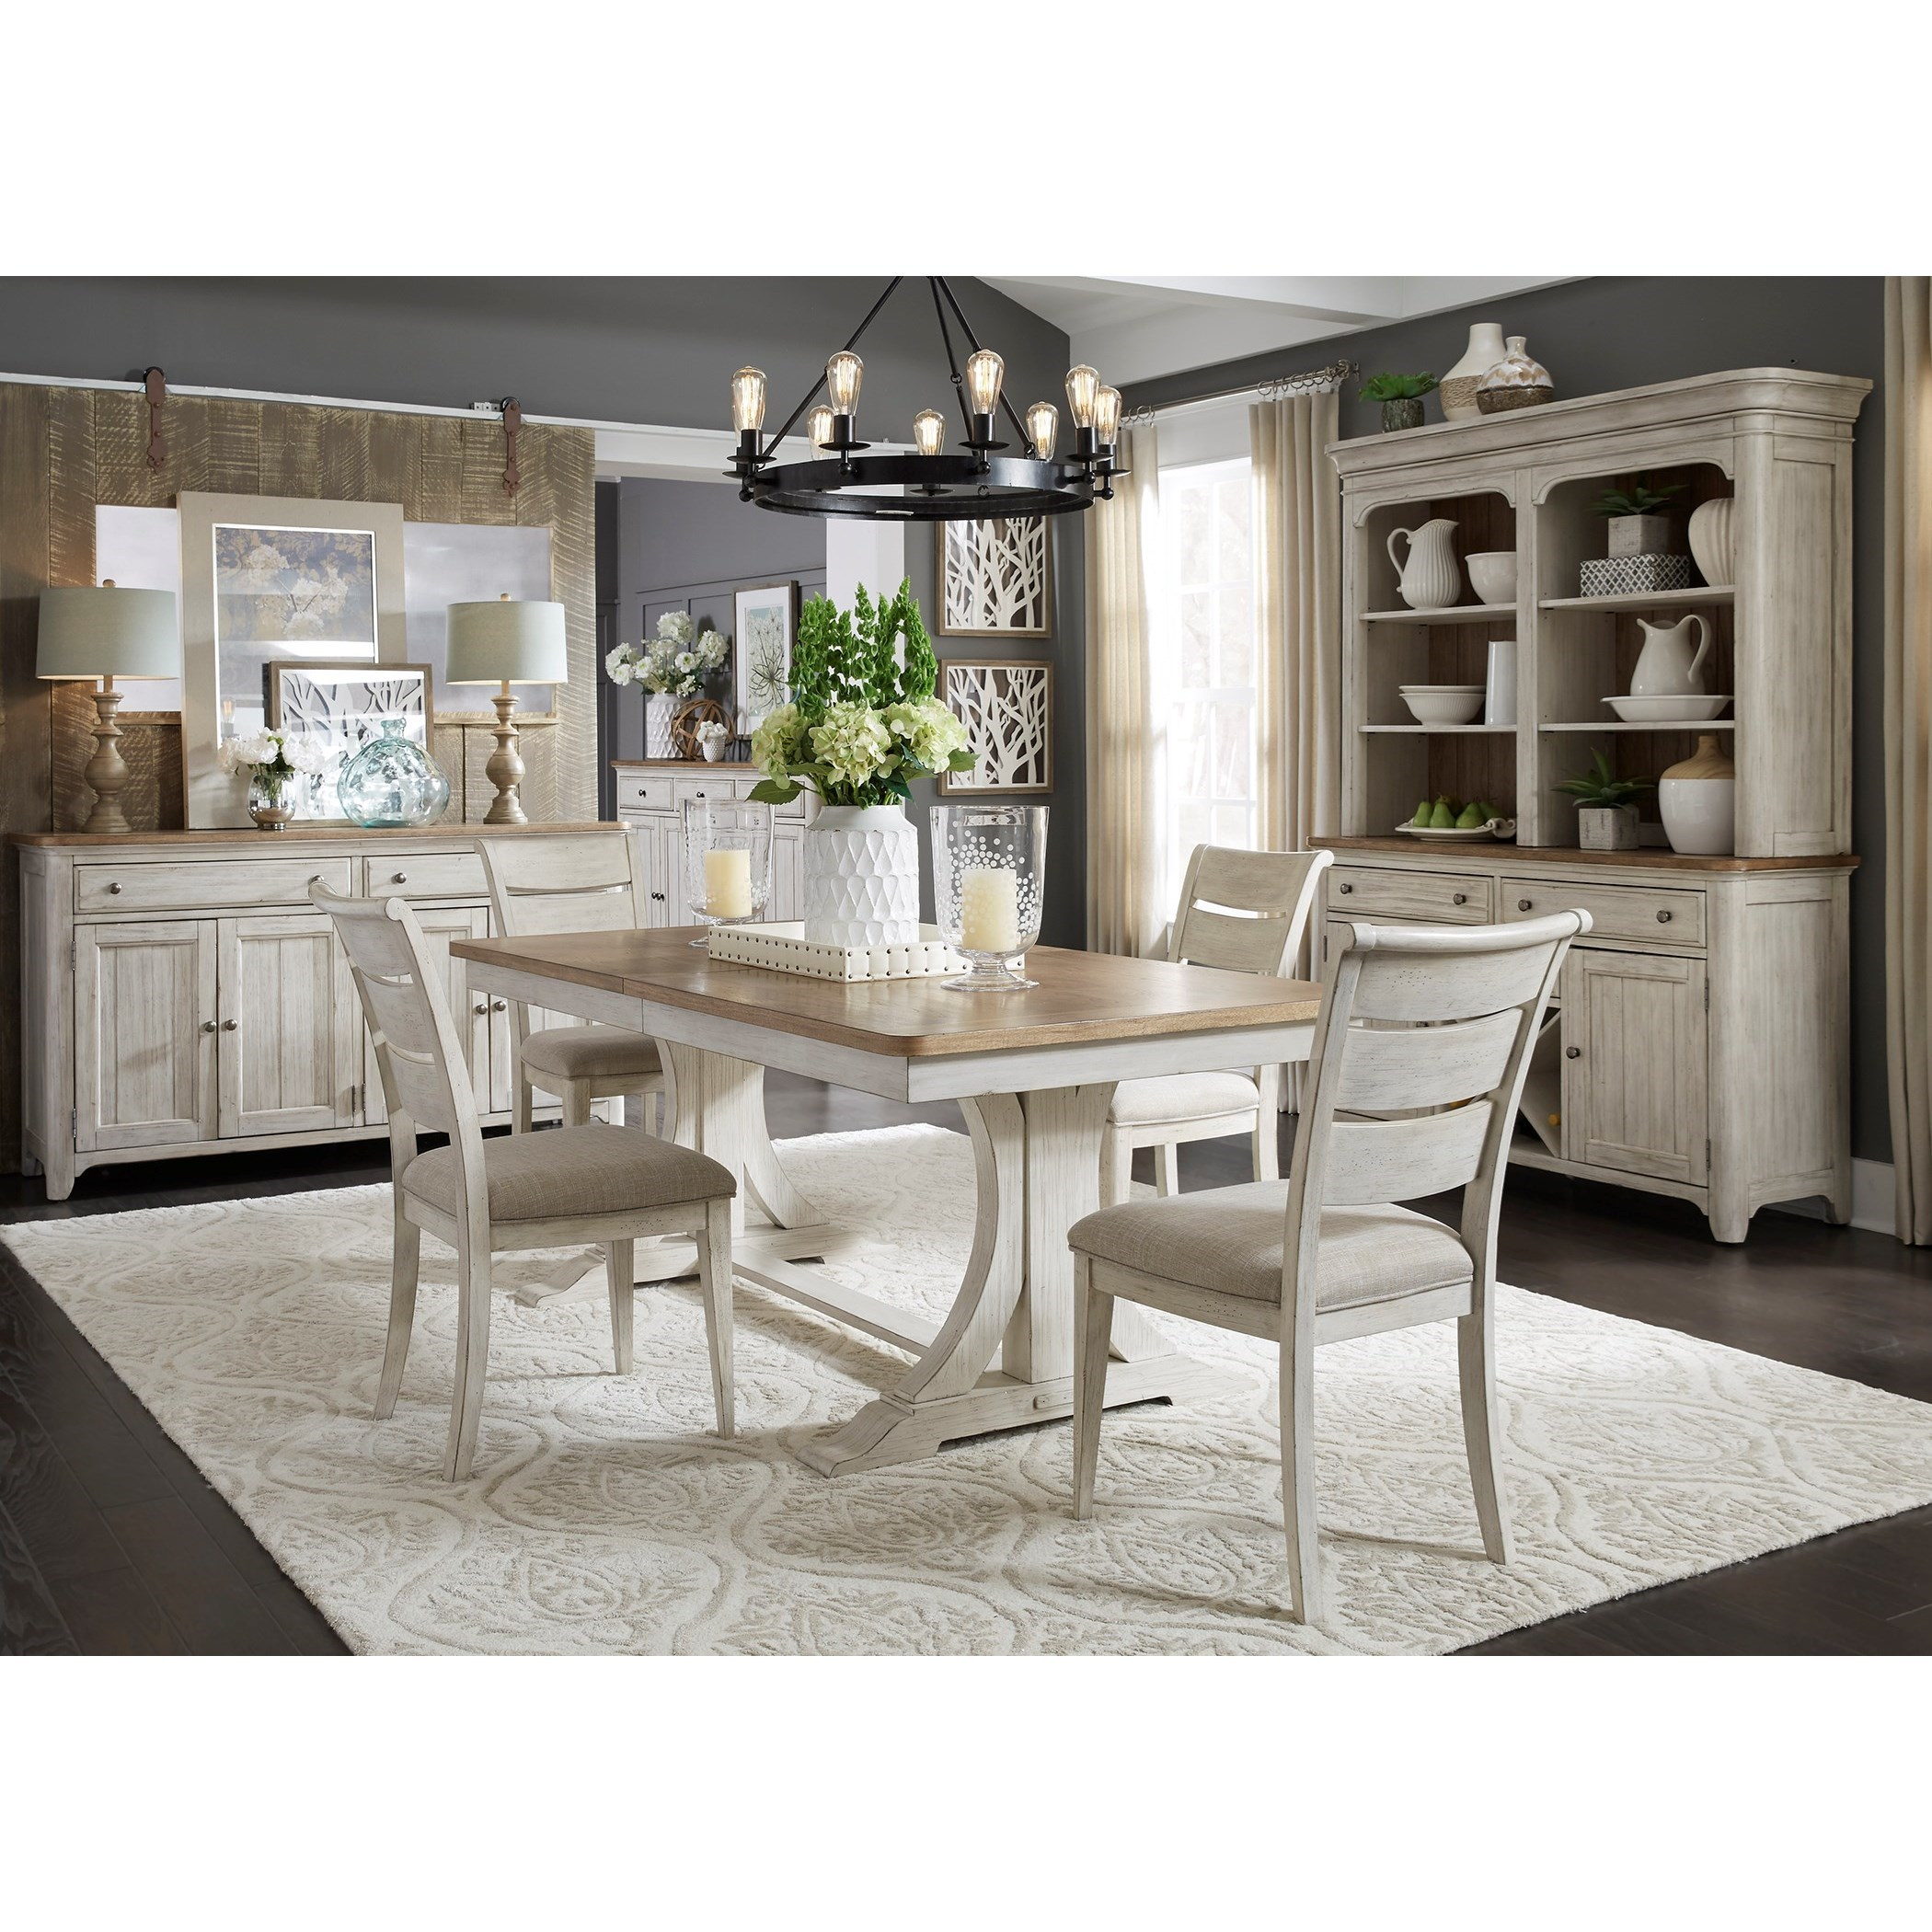 Farmhouse Reimagined Dining Room Group by Liberty Furniture at Dinette Depot